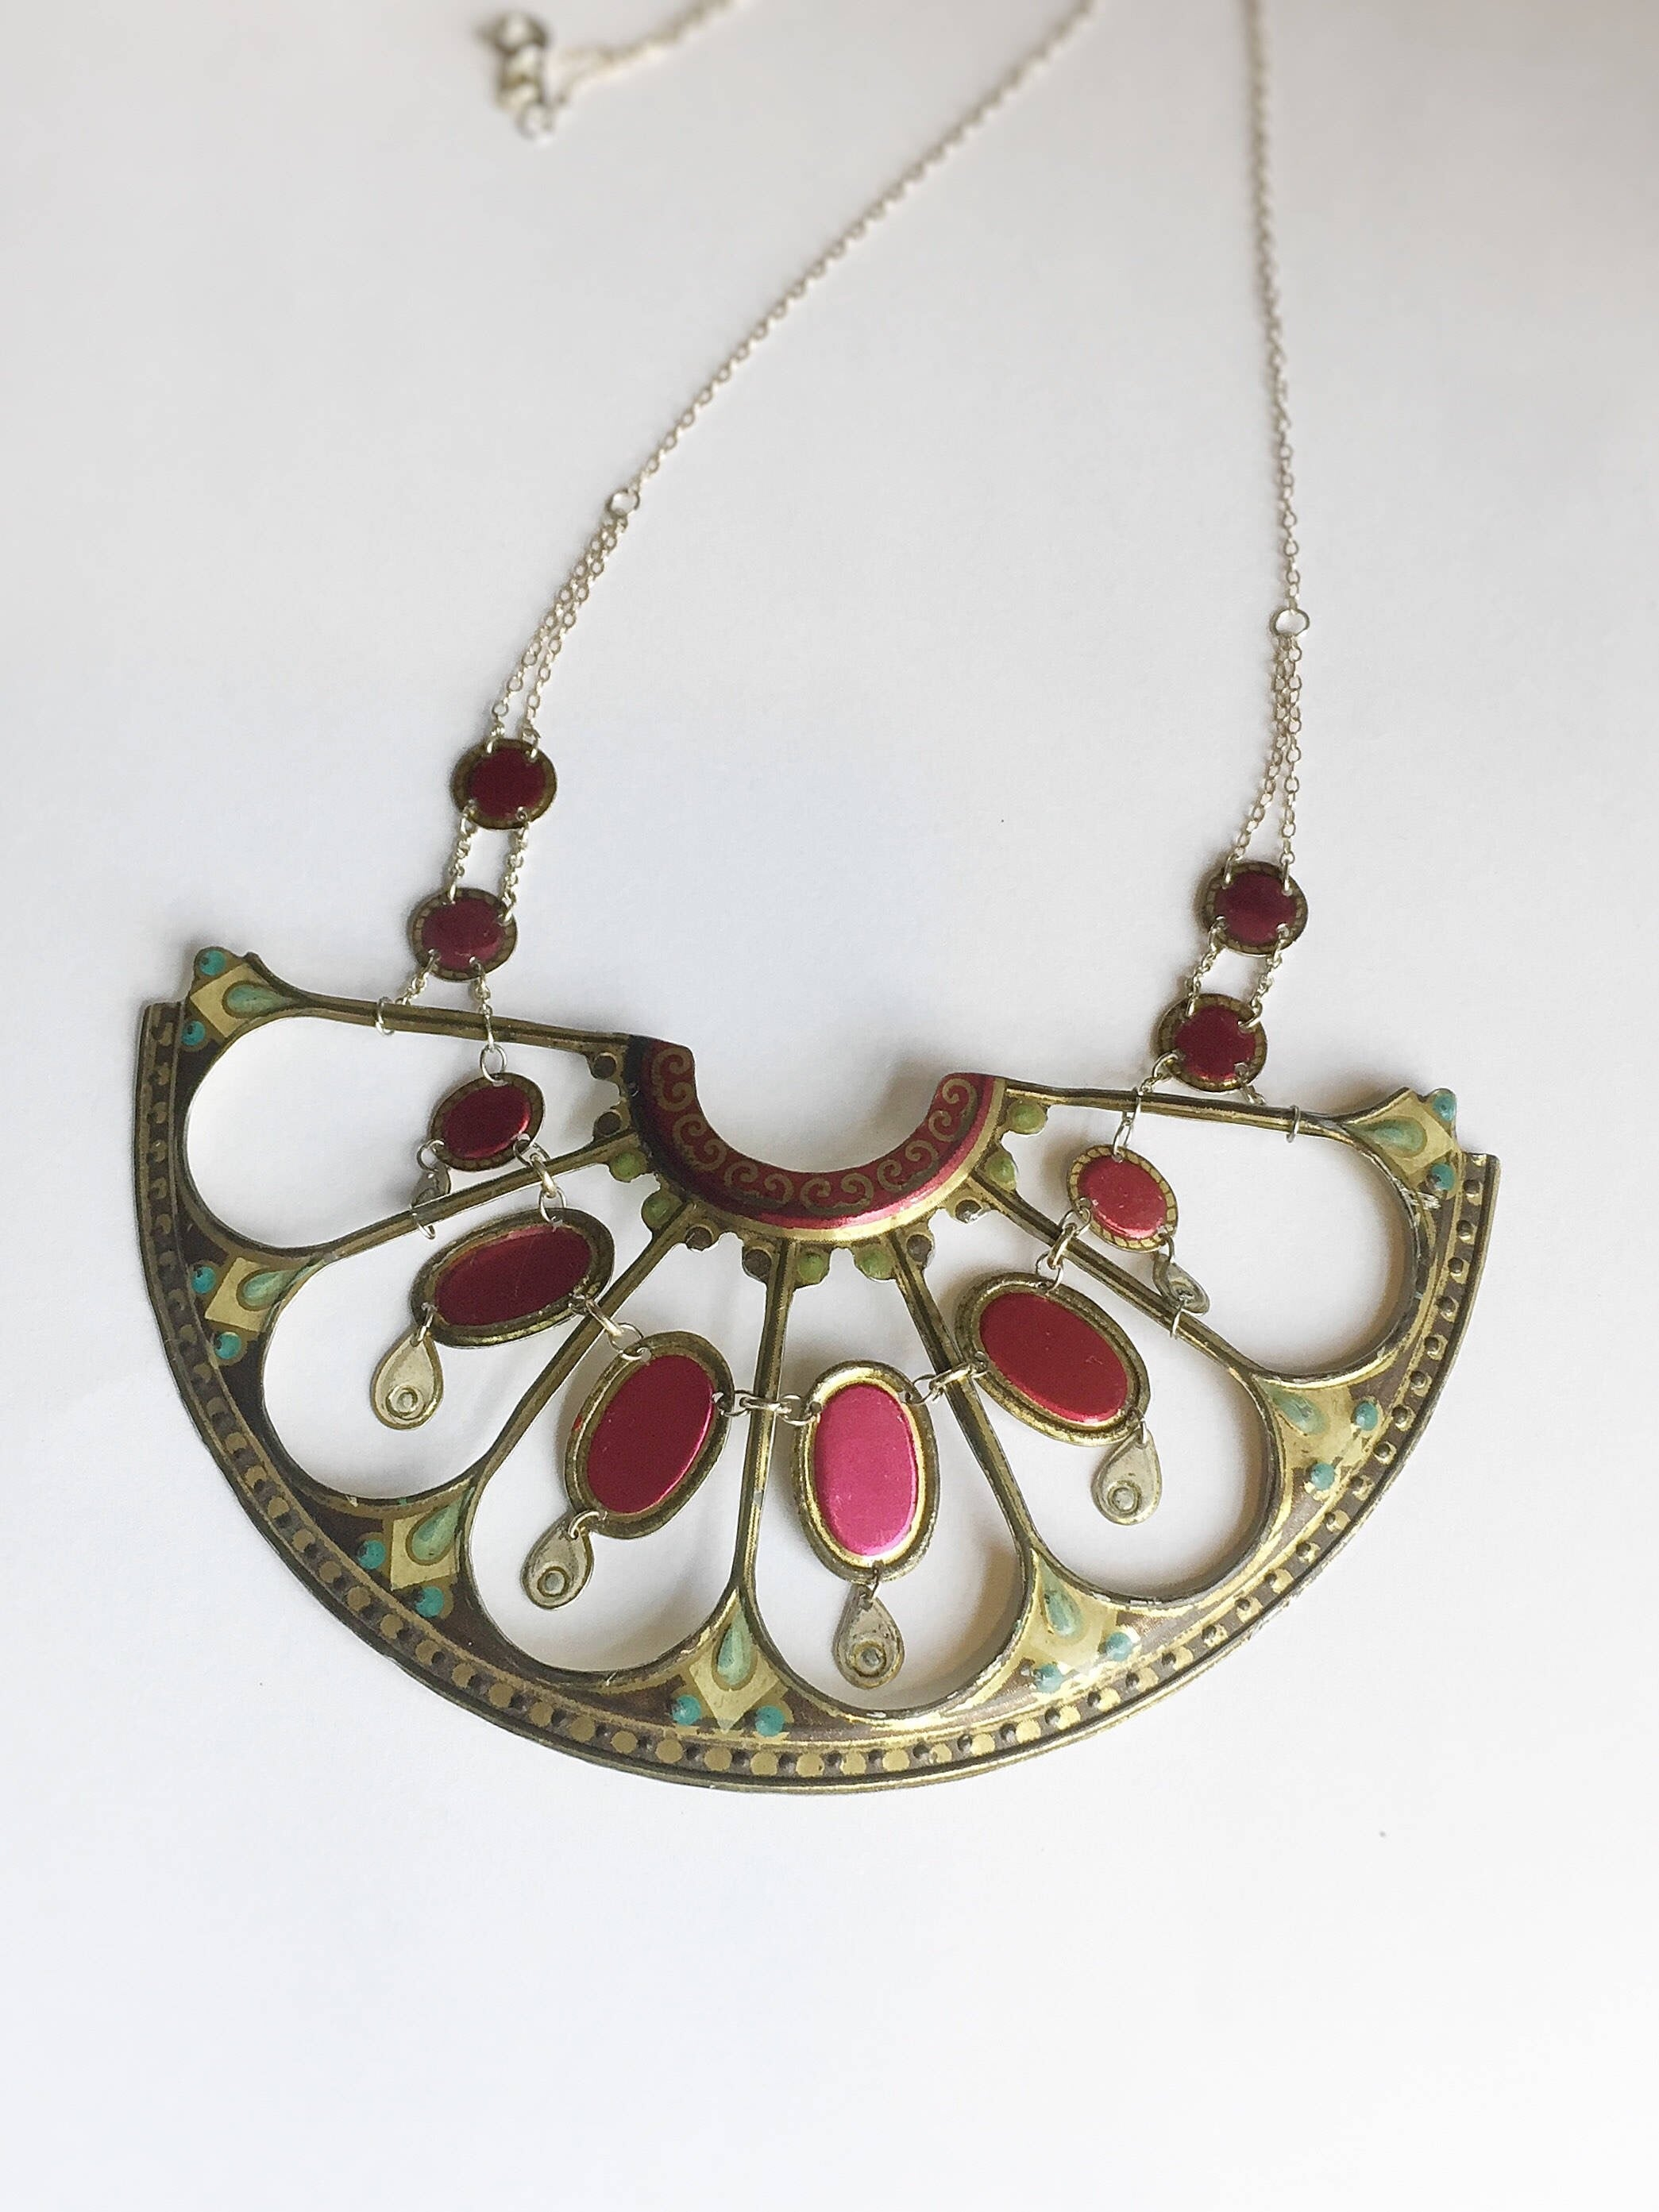 Tin Jewelry - Vintage Victorian statement necklace Main Image 2